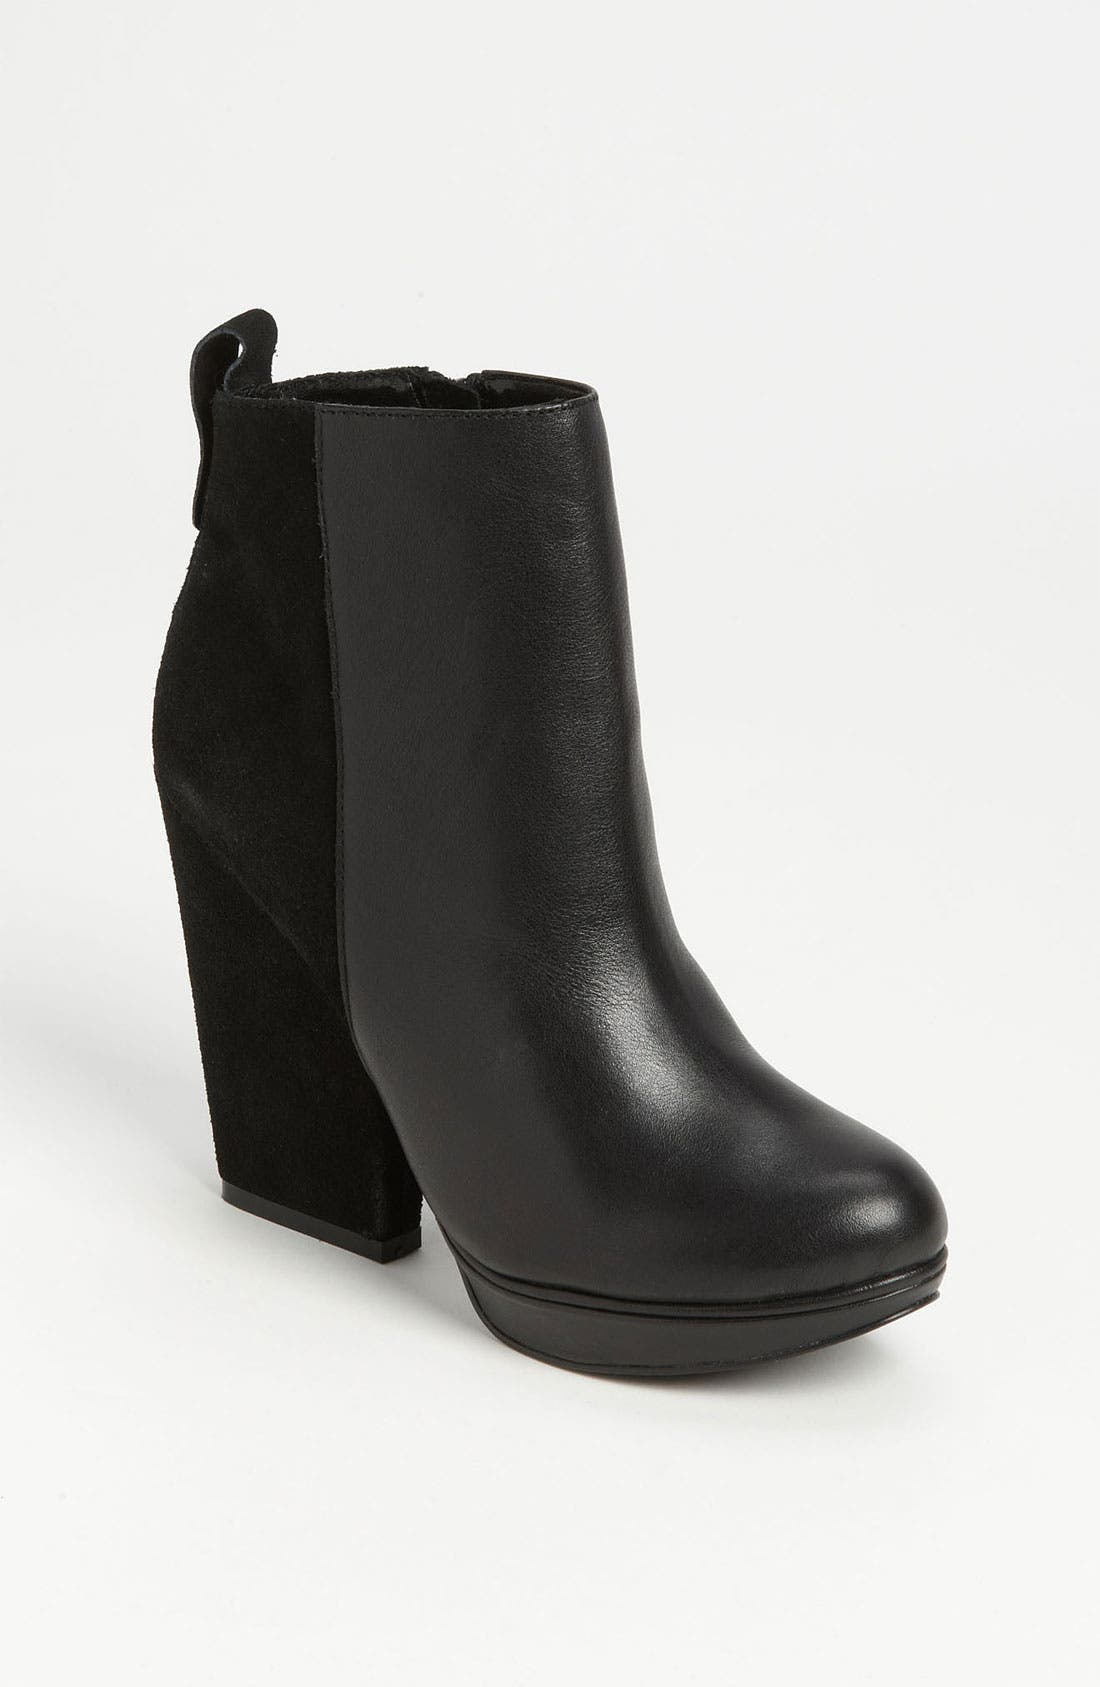 Main Image - Steve Madden 'Upstage' Bootie